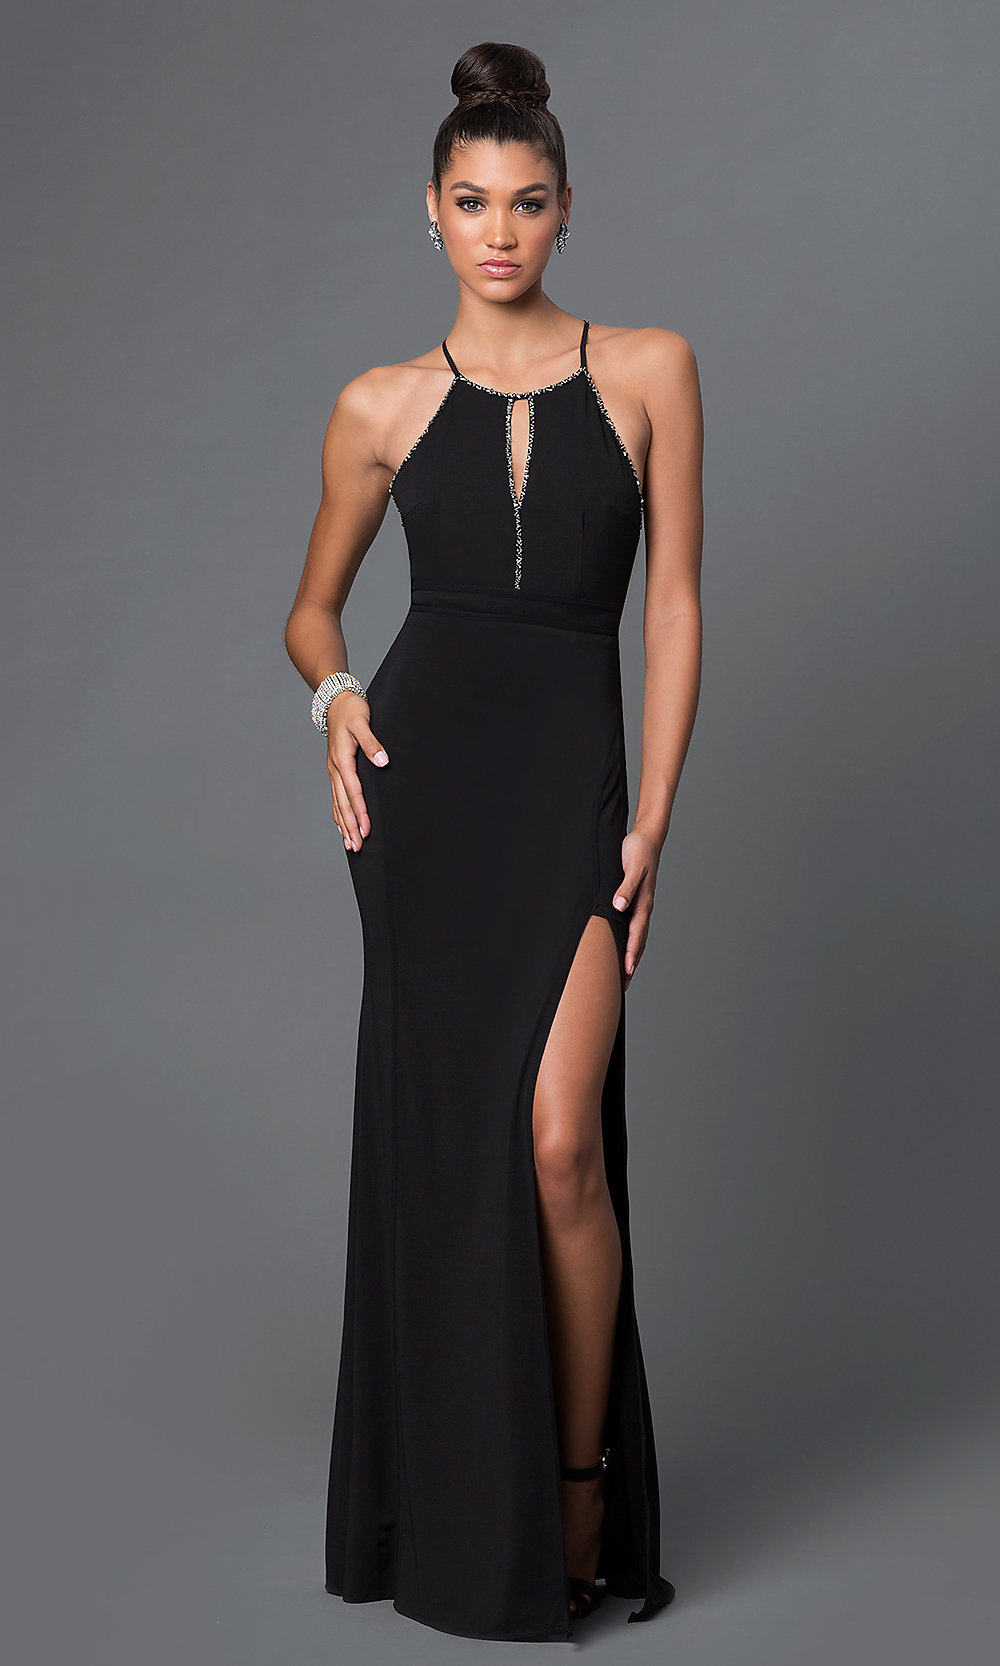 Low Back, Backless, Open Back Evening Dresses